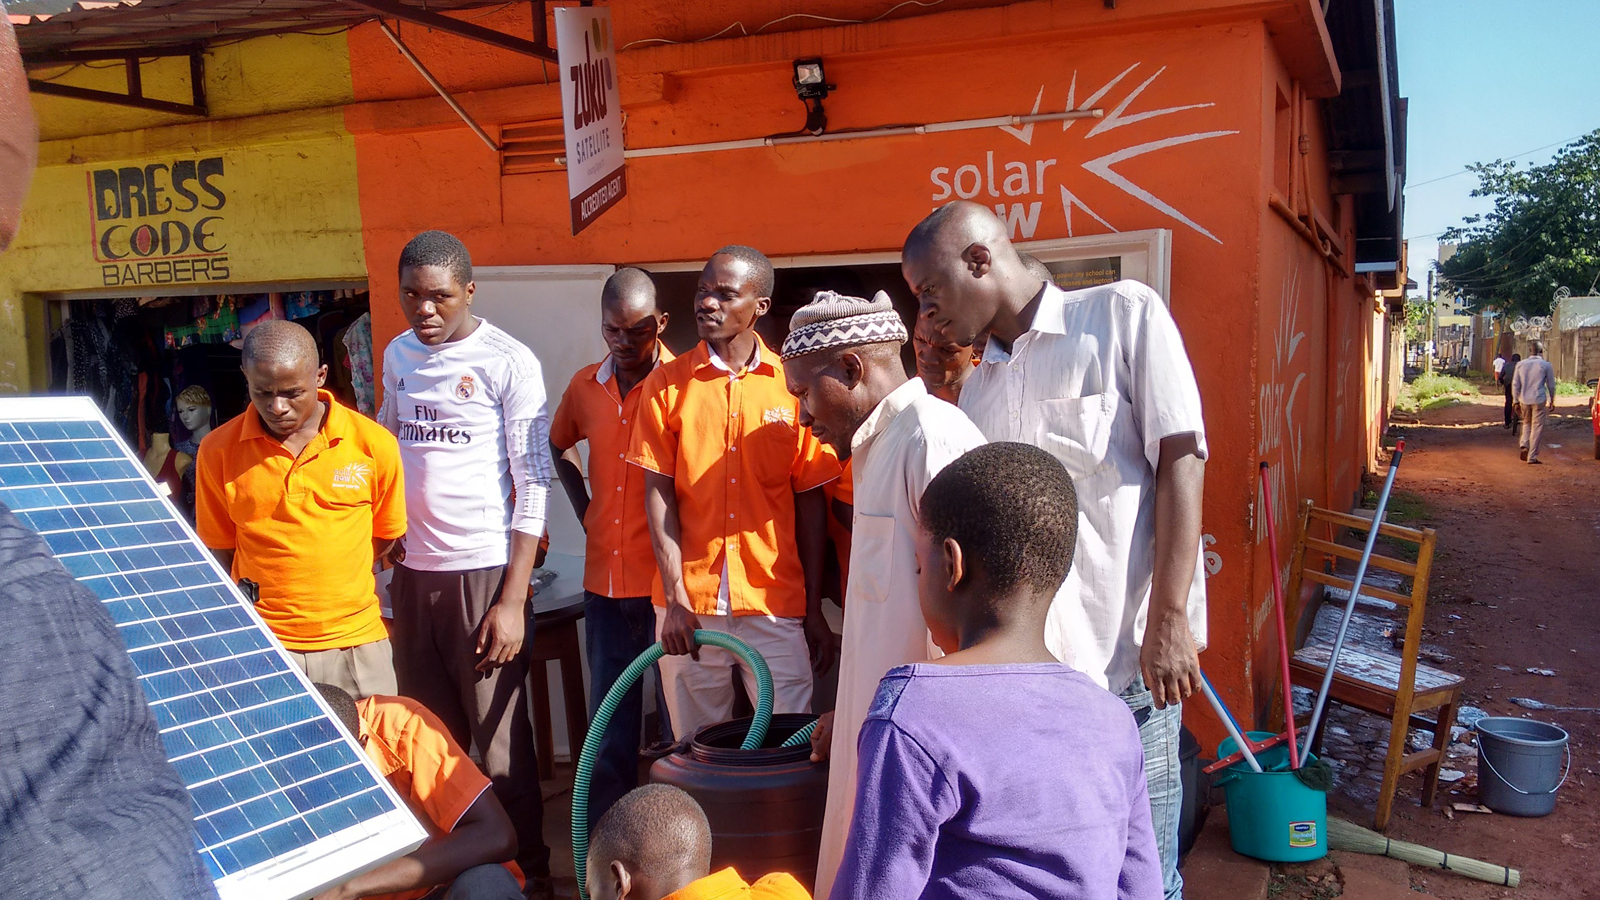 A demonstration of the solar pump outside a SolarNow store in Uganda